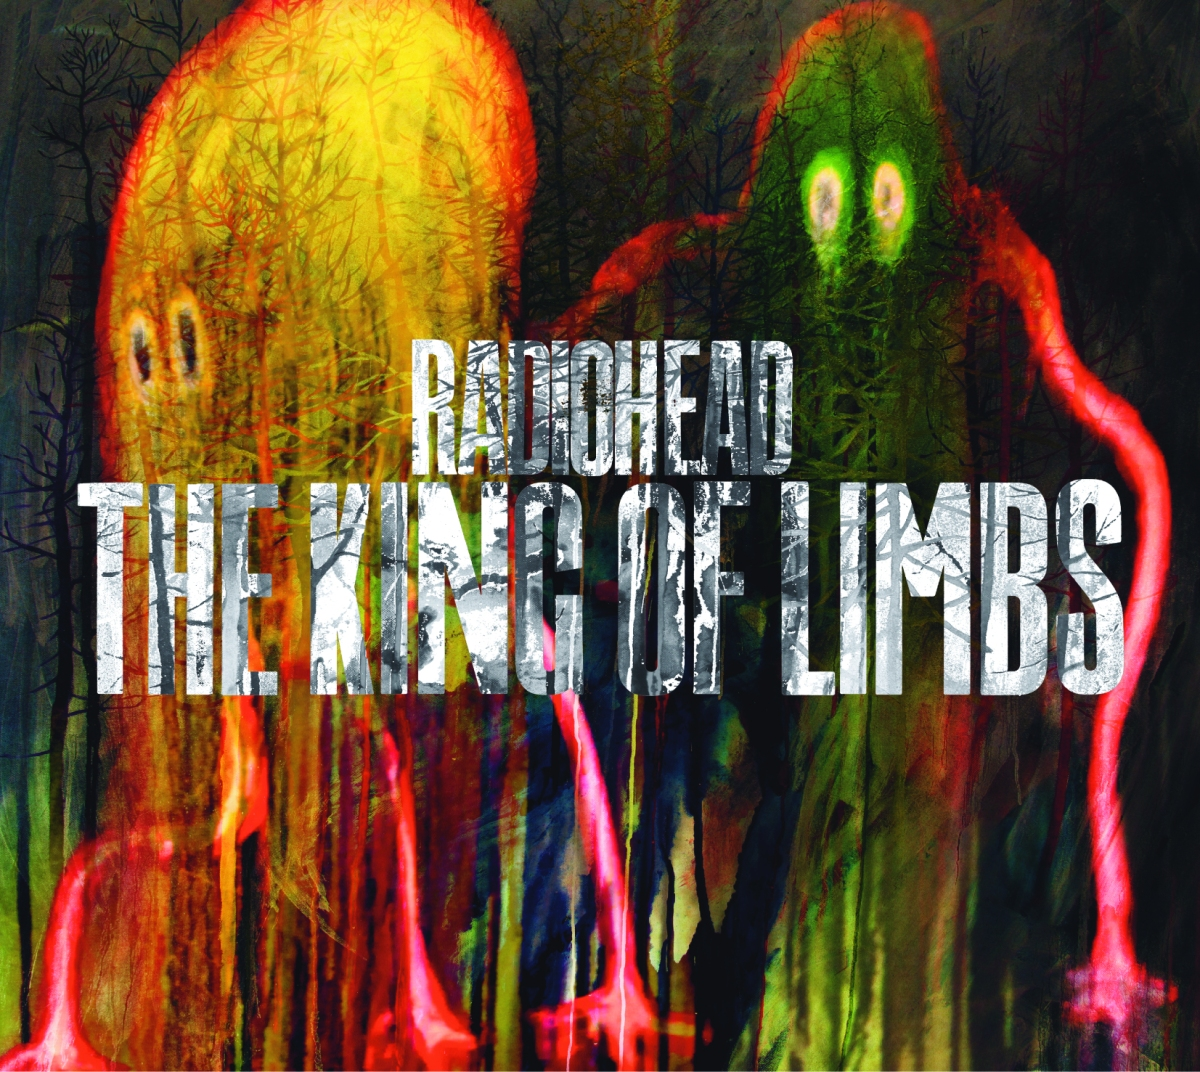 Underrated Listen: Radiohead - The King of Limbs